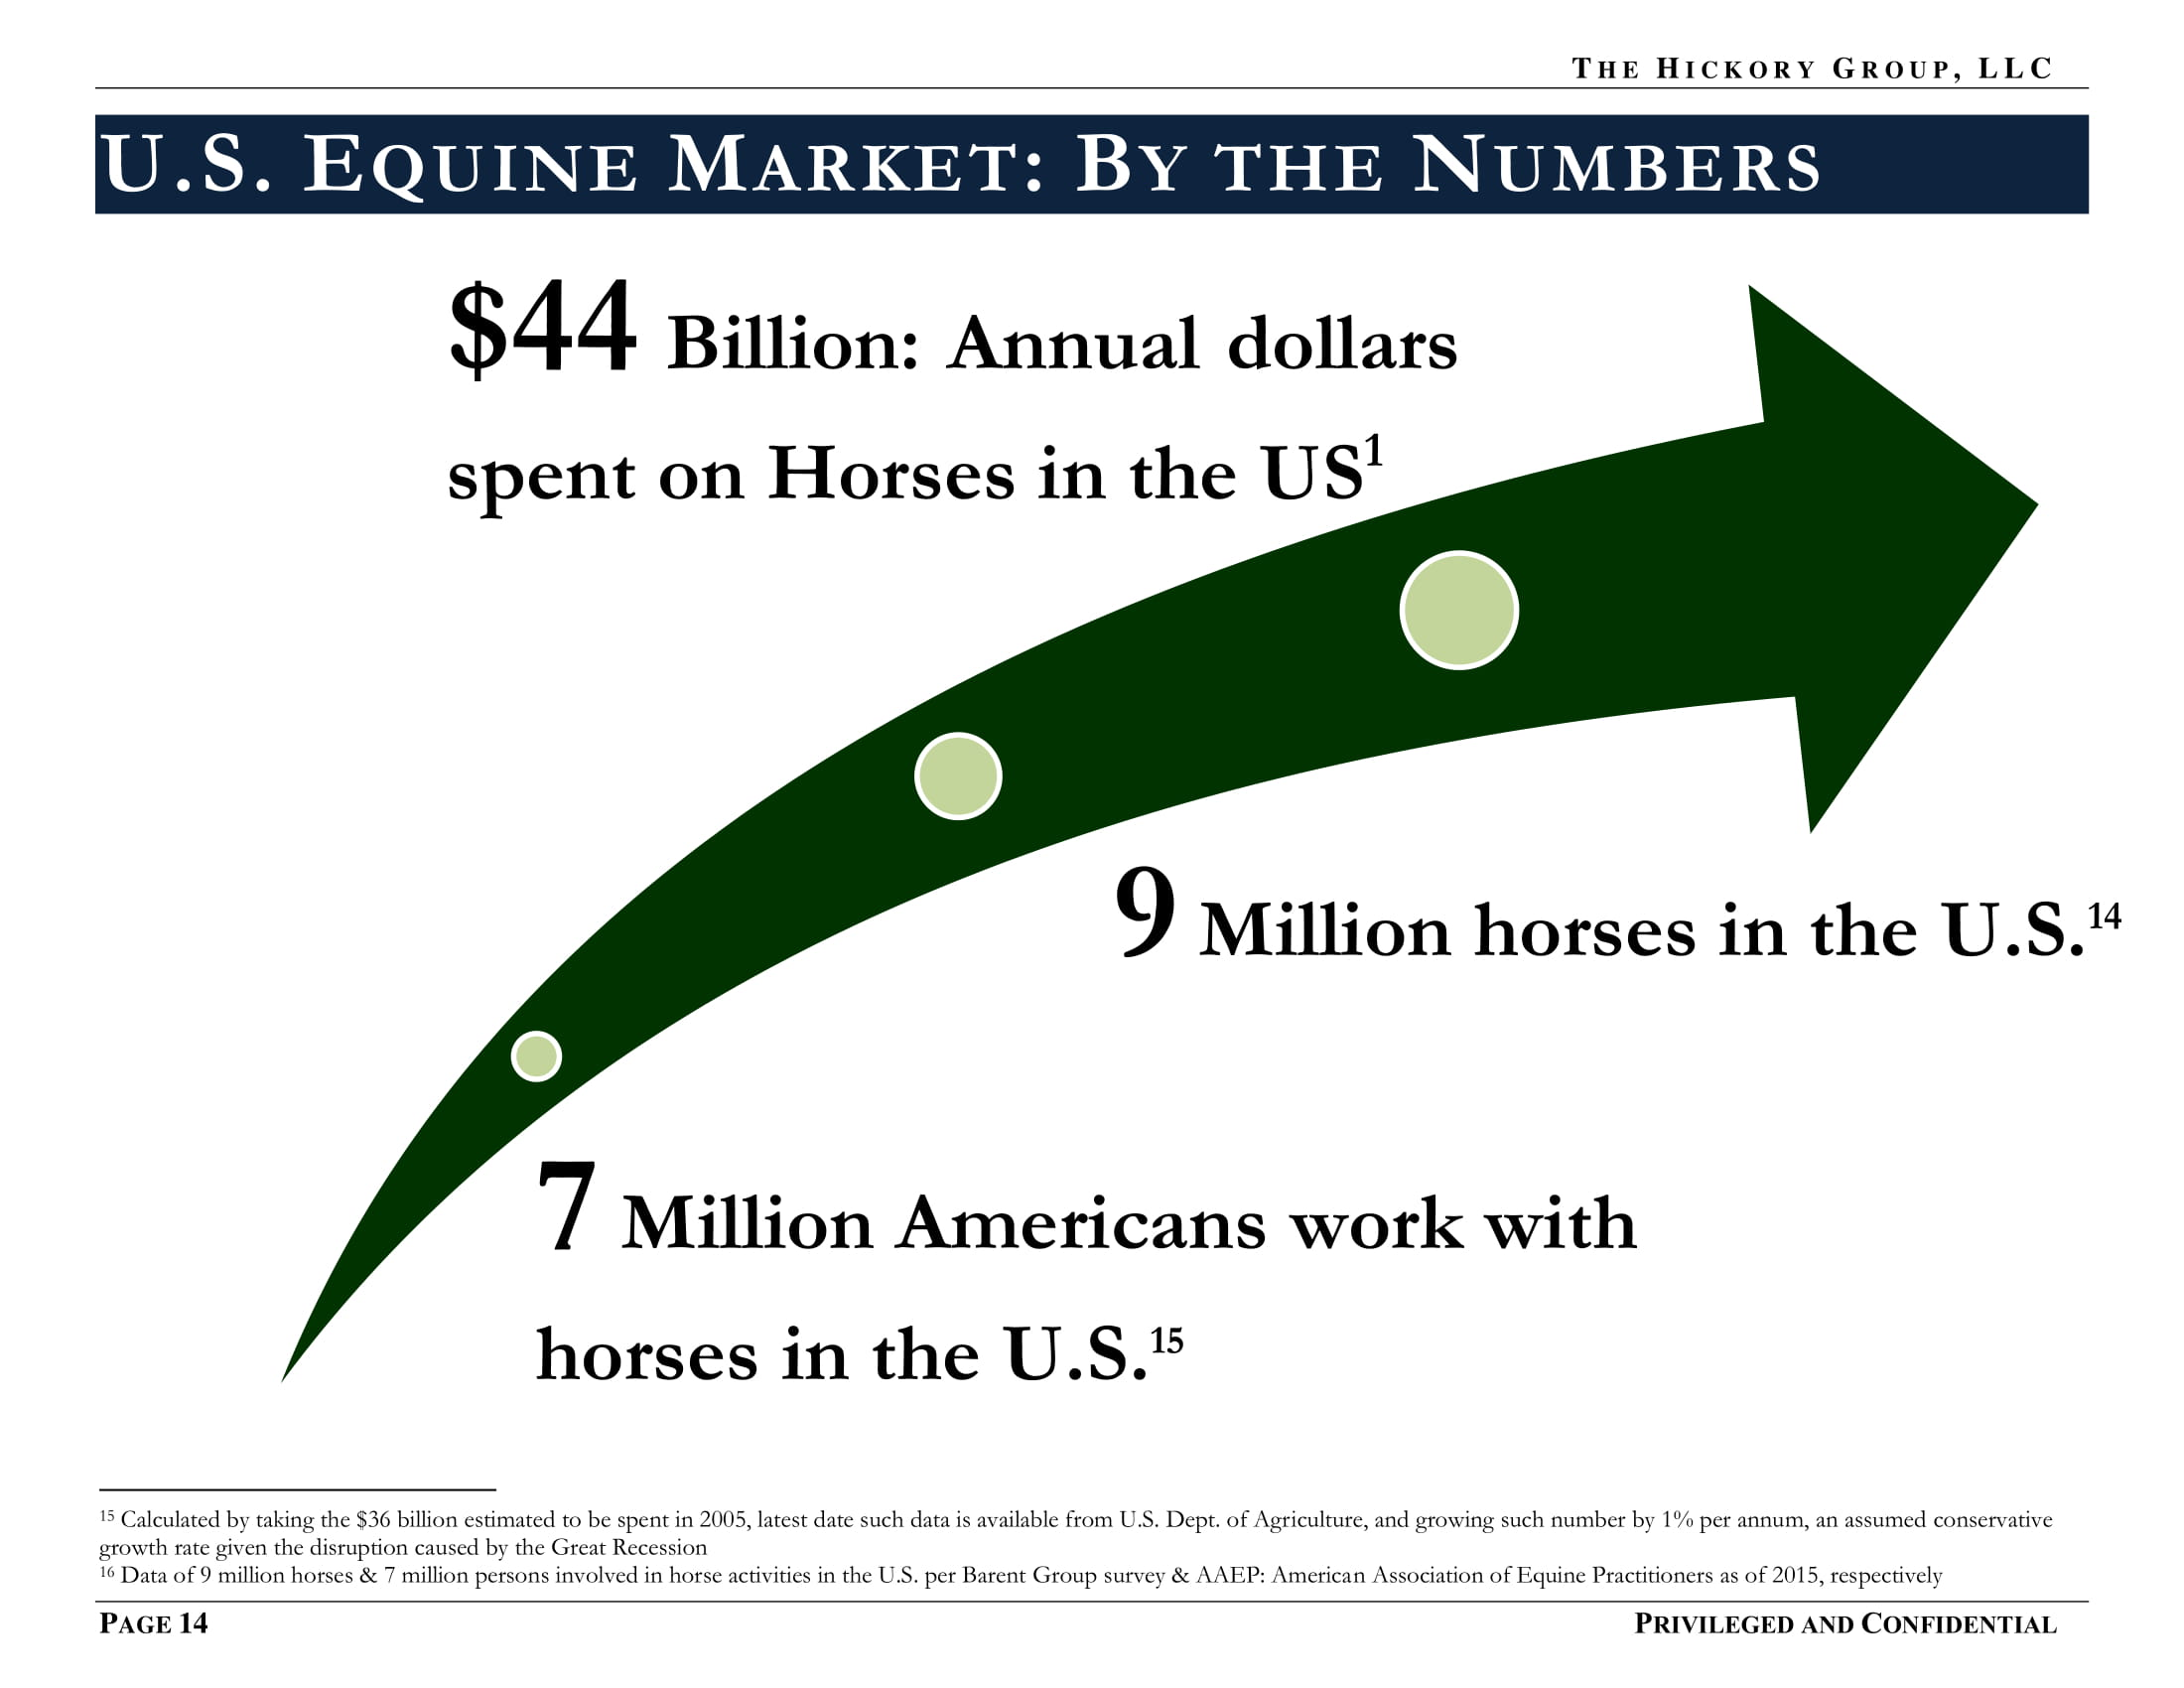 PUBLIC FINAL _Millennials and Equine Market Summary (15 November 2017) Privileged and Confidential-14.jpg